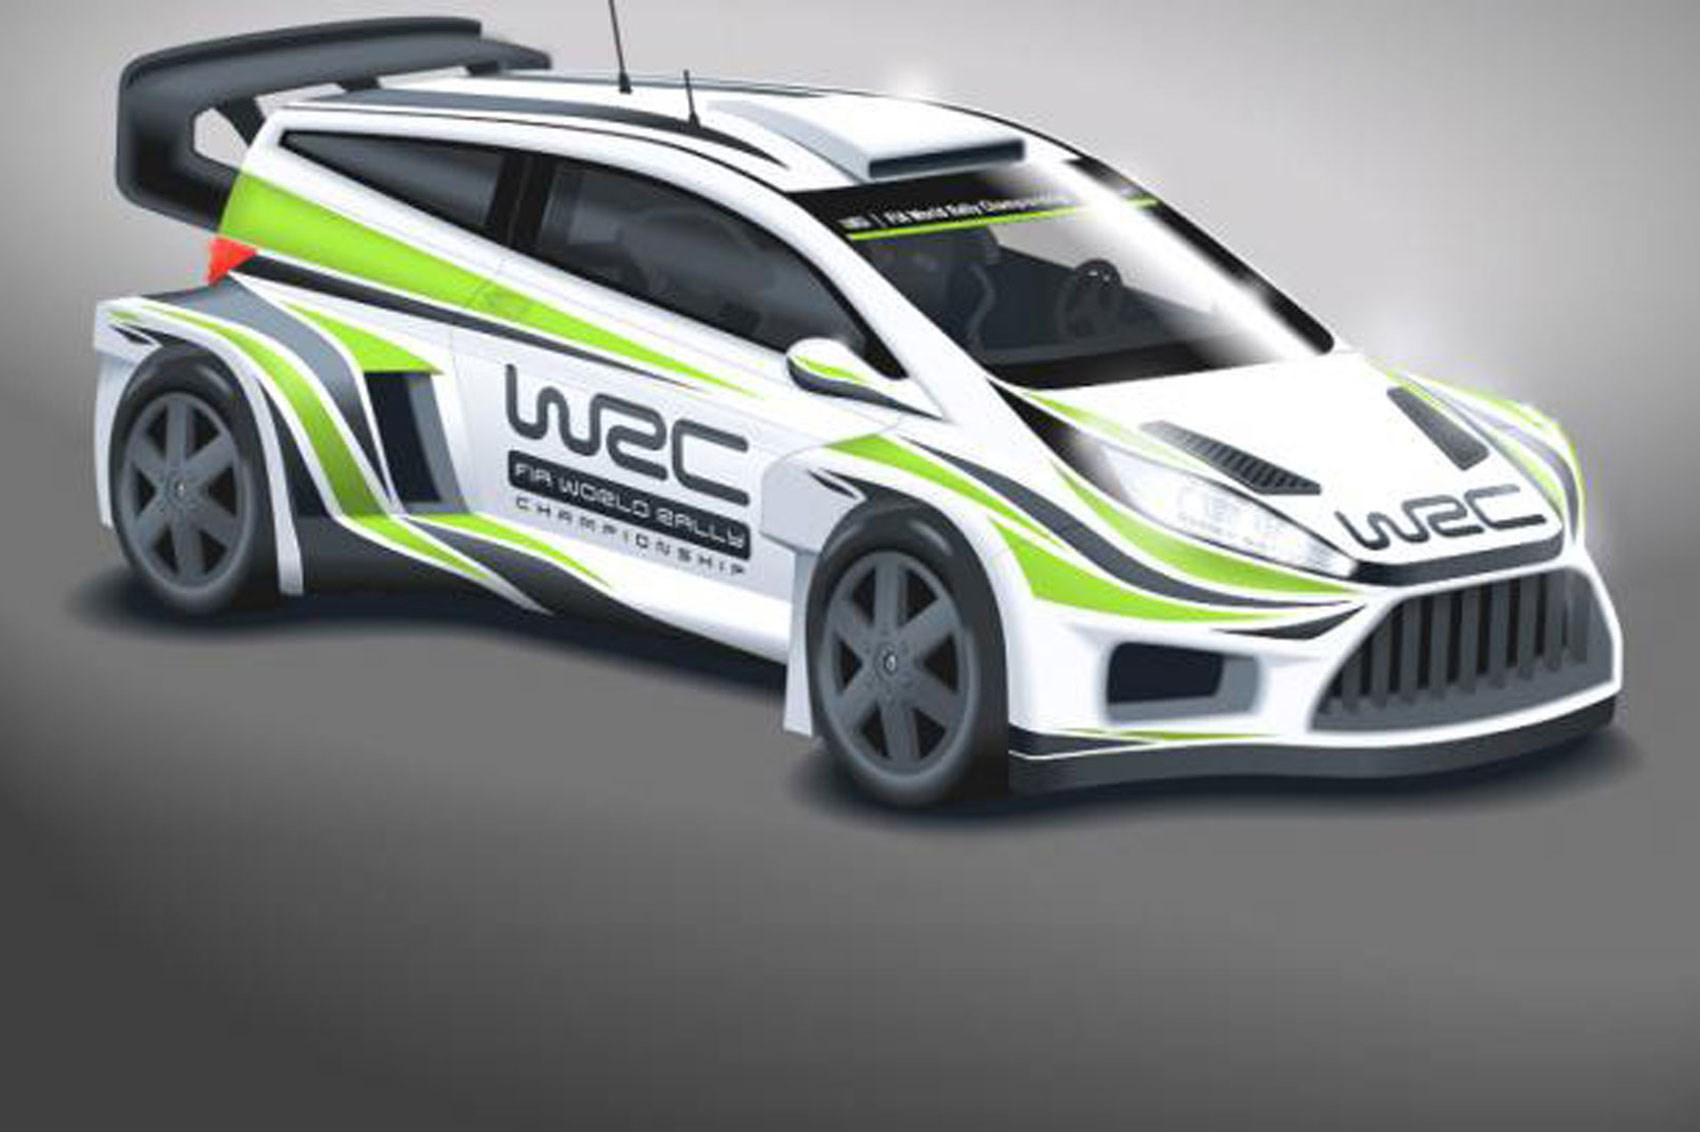 Ultrablogus  Outstanding Wild New Look For Wrc Cars In  By Car Magazine With Lovable Wrc Cars Will Get Wider Bodies Bigger Wings And More Power For  With Lovely Range Rover Evoque Interior Colors Also Audi S Interior In Addition Mk Golf Gti Interior And Range Rover Sport Interior  As Well As Vw Golf Interior Dimensions Additionally Subaru Forester Interior Dimensions From Carmagazinecouk With Ultrablogus  Lovable Wild New Look For Wrc Cars In  By Car Magazine With Lovely Wrc Cars Will Get Wider Bodies Bigger Wings And More Power For  And Outstanding Range Rover Evoque Interior Colors Also Audi S Interior In Addition Mk Golf Gti Interior From Carmagazinecouk